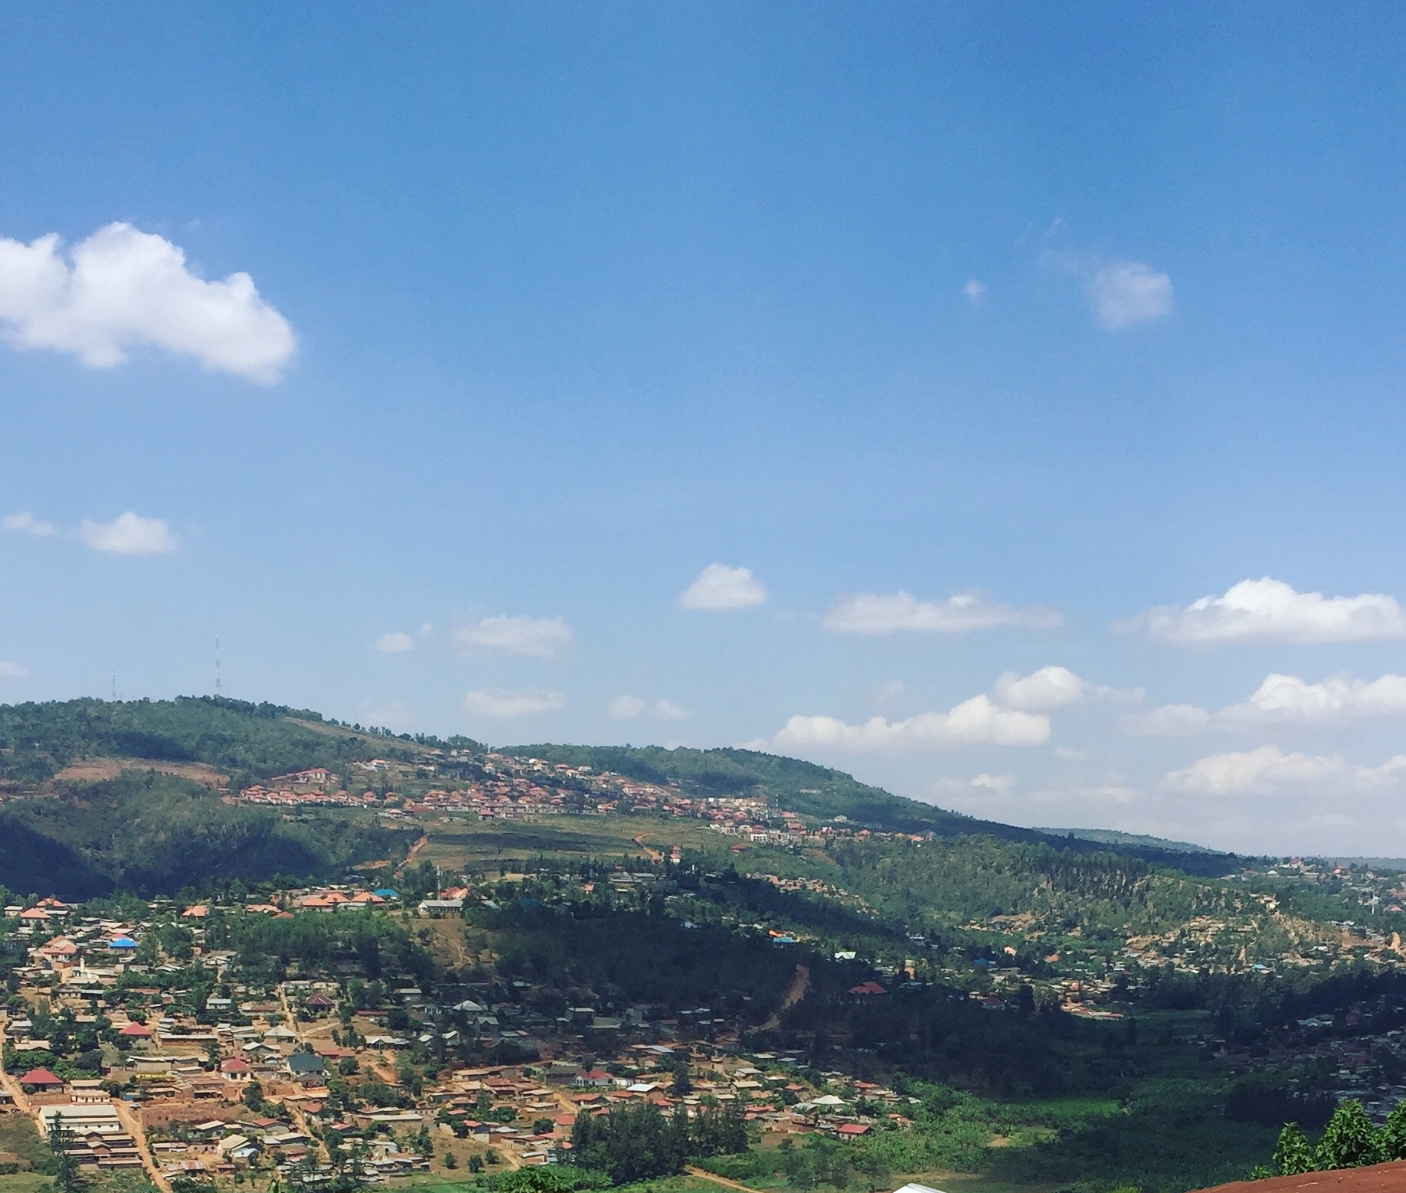 A hillside in Kigali, Rwanda, where the author plans to study abroad.